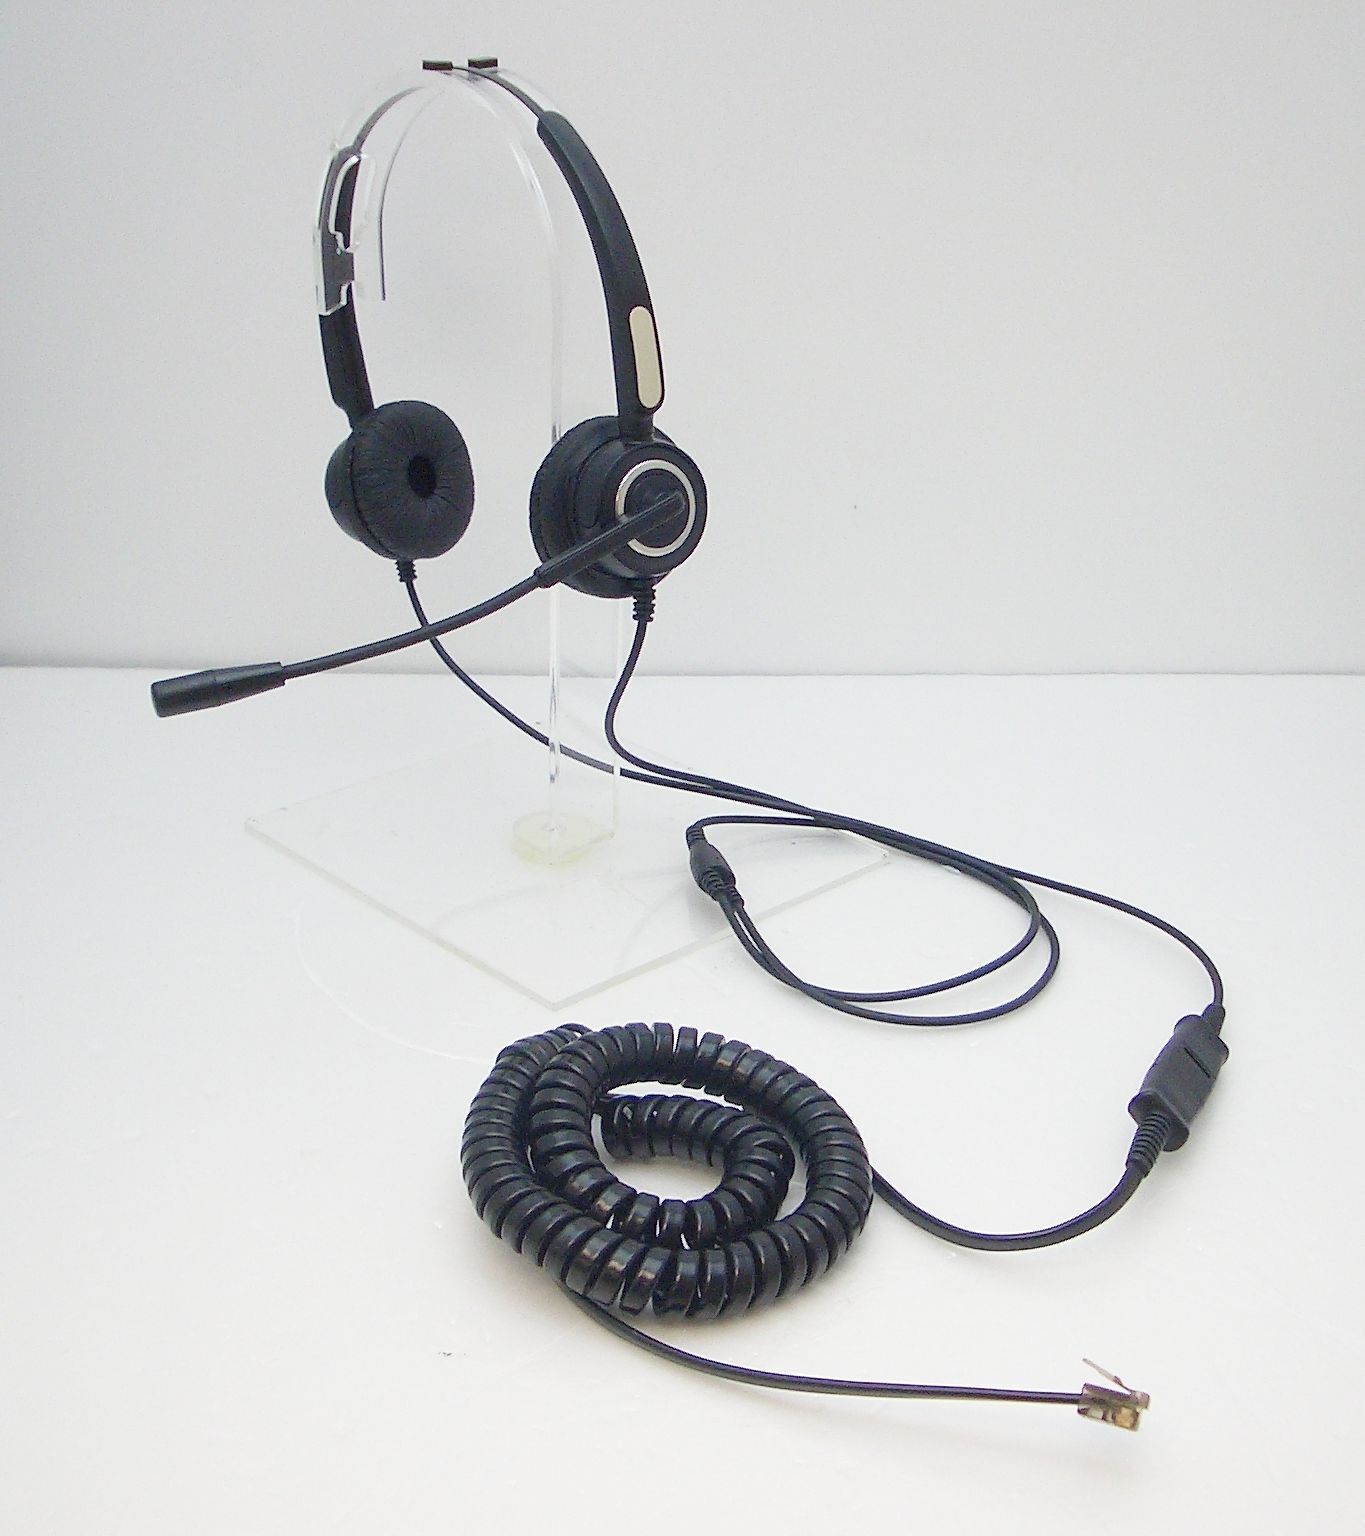 Details about EMS460-U10 Headset for Cisco 6821 6841 6861 6921 6941 7821  7841 7941 8841 & 8851